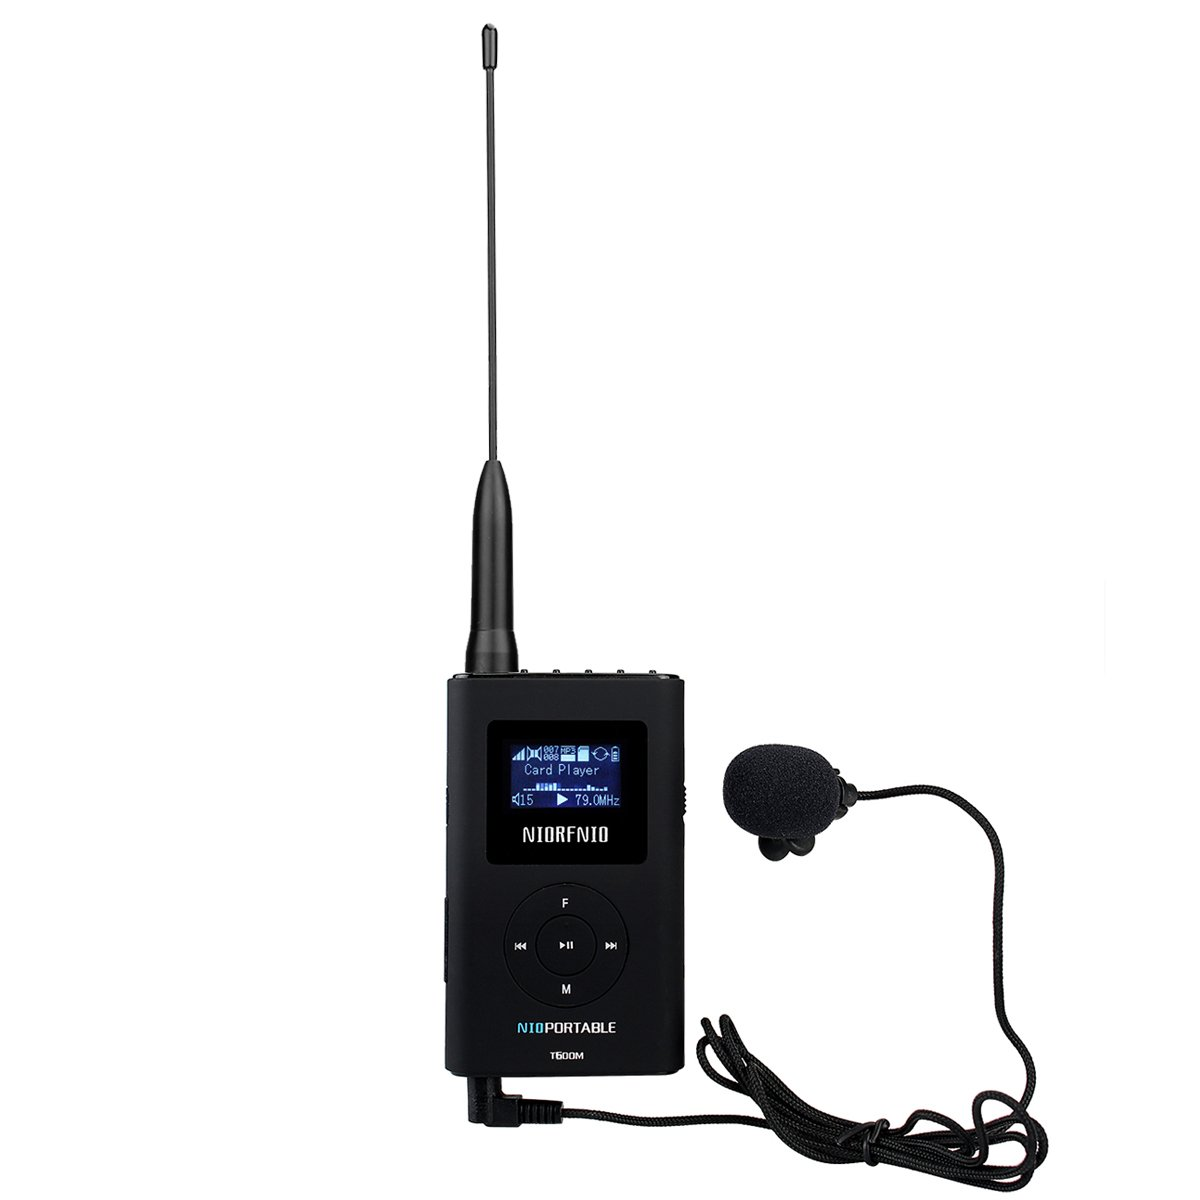 Retekess T600M 0.6W Portable FM Transmitter 76MHz-108MHz Tour Guide System For Church Translation with 8GB Memory Card